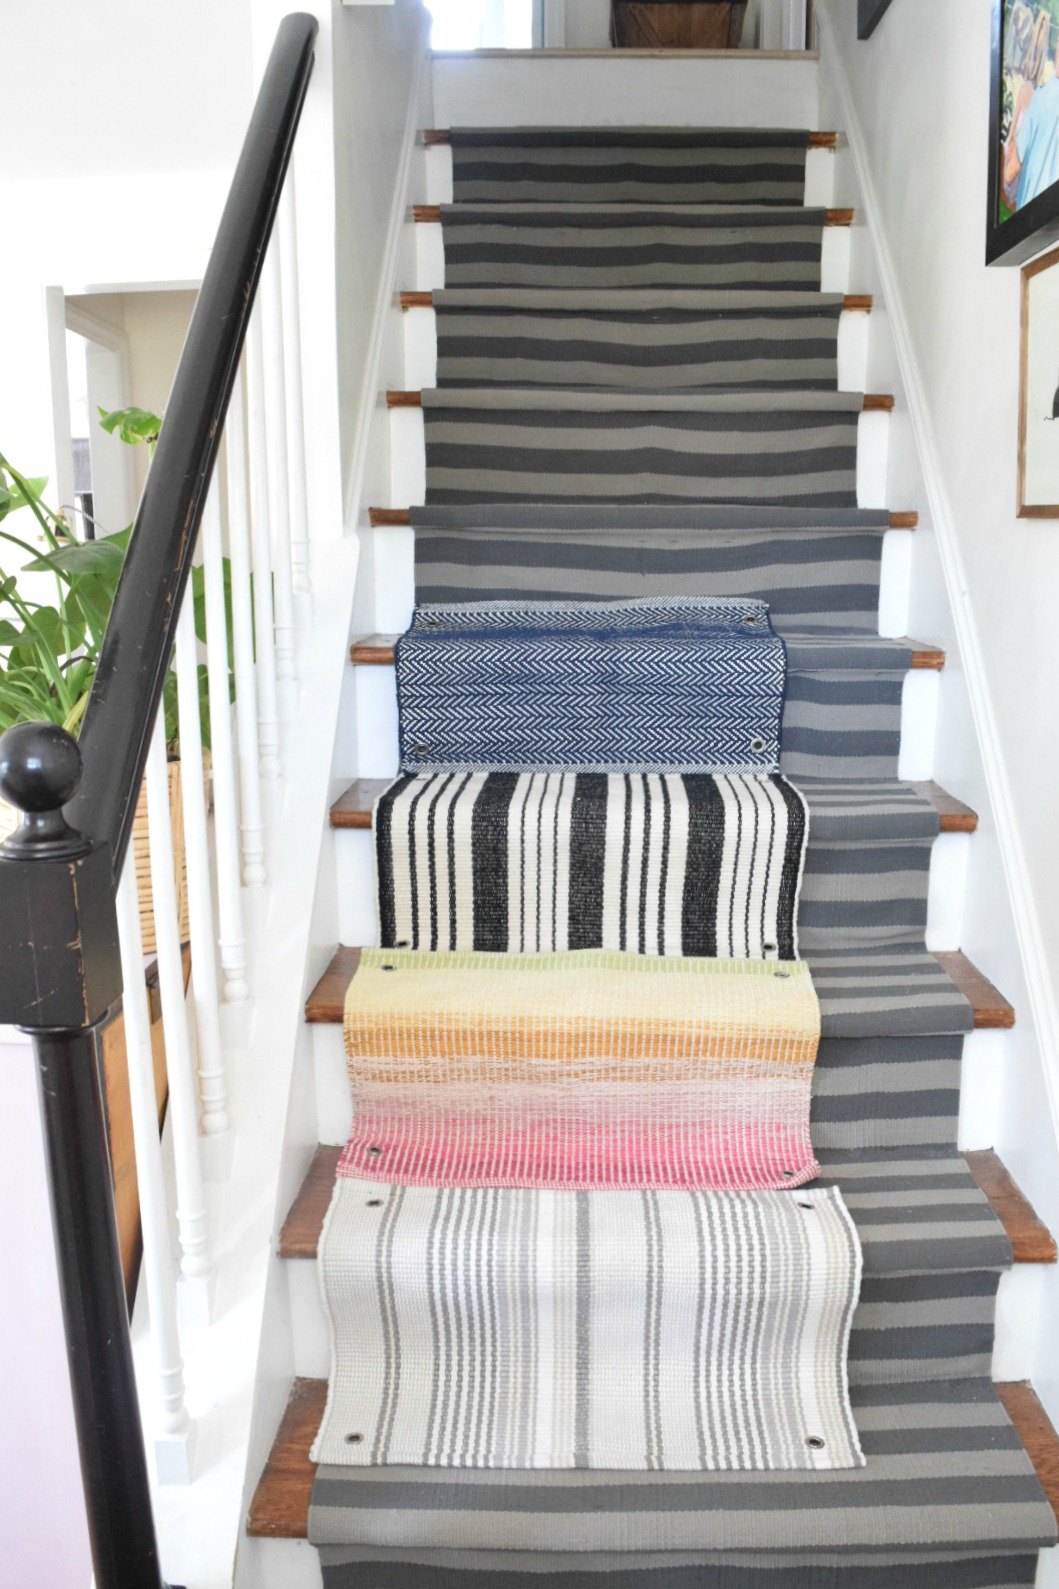 Stair Runners- Favorite Ideas for Rugs on Stairs